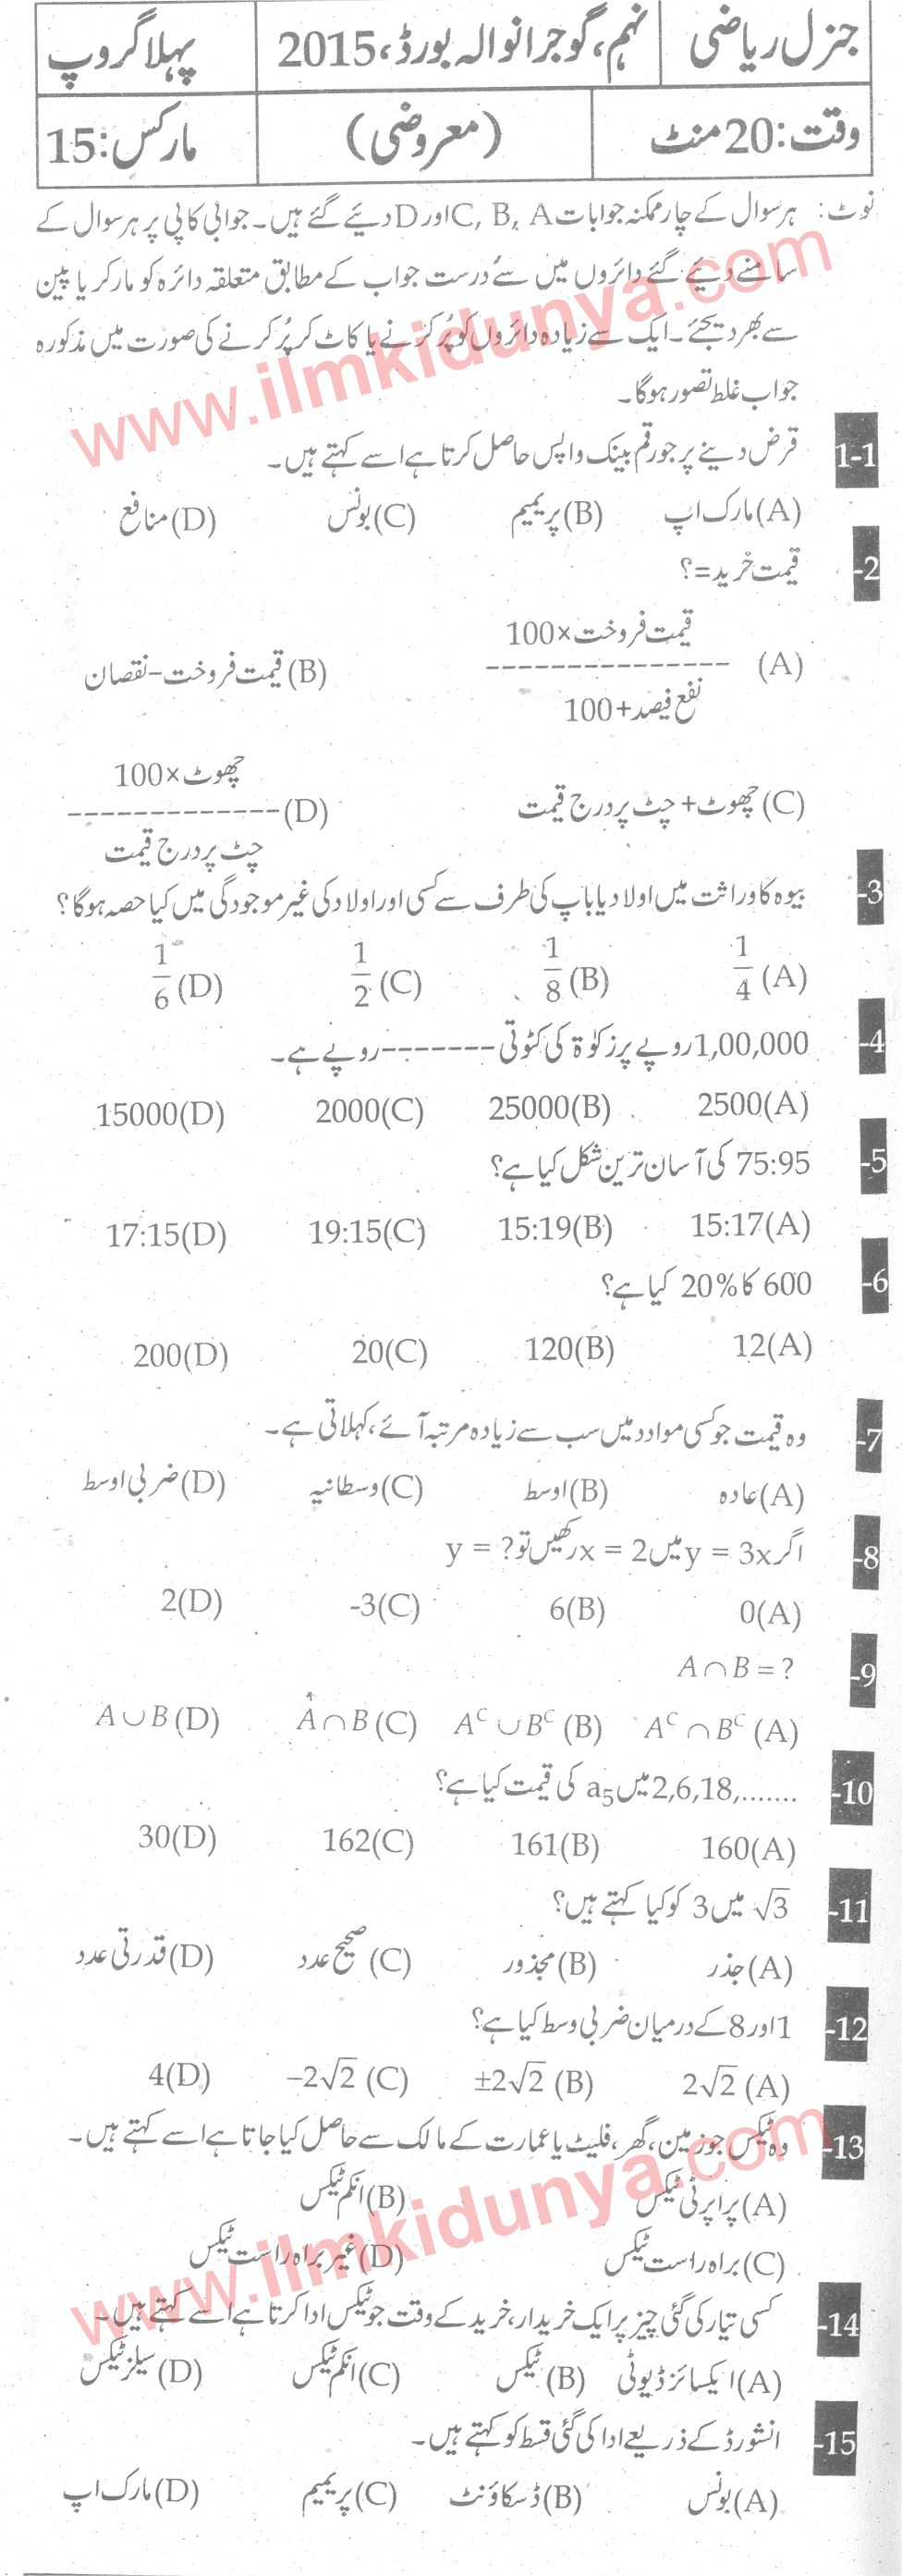 Past Papers 2015 Gujranwala Board 9th Class General Math